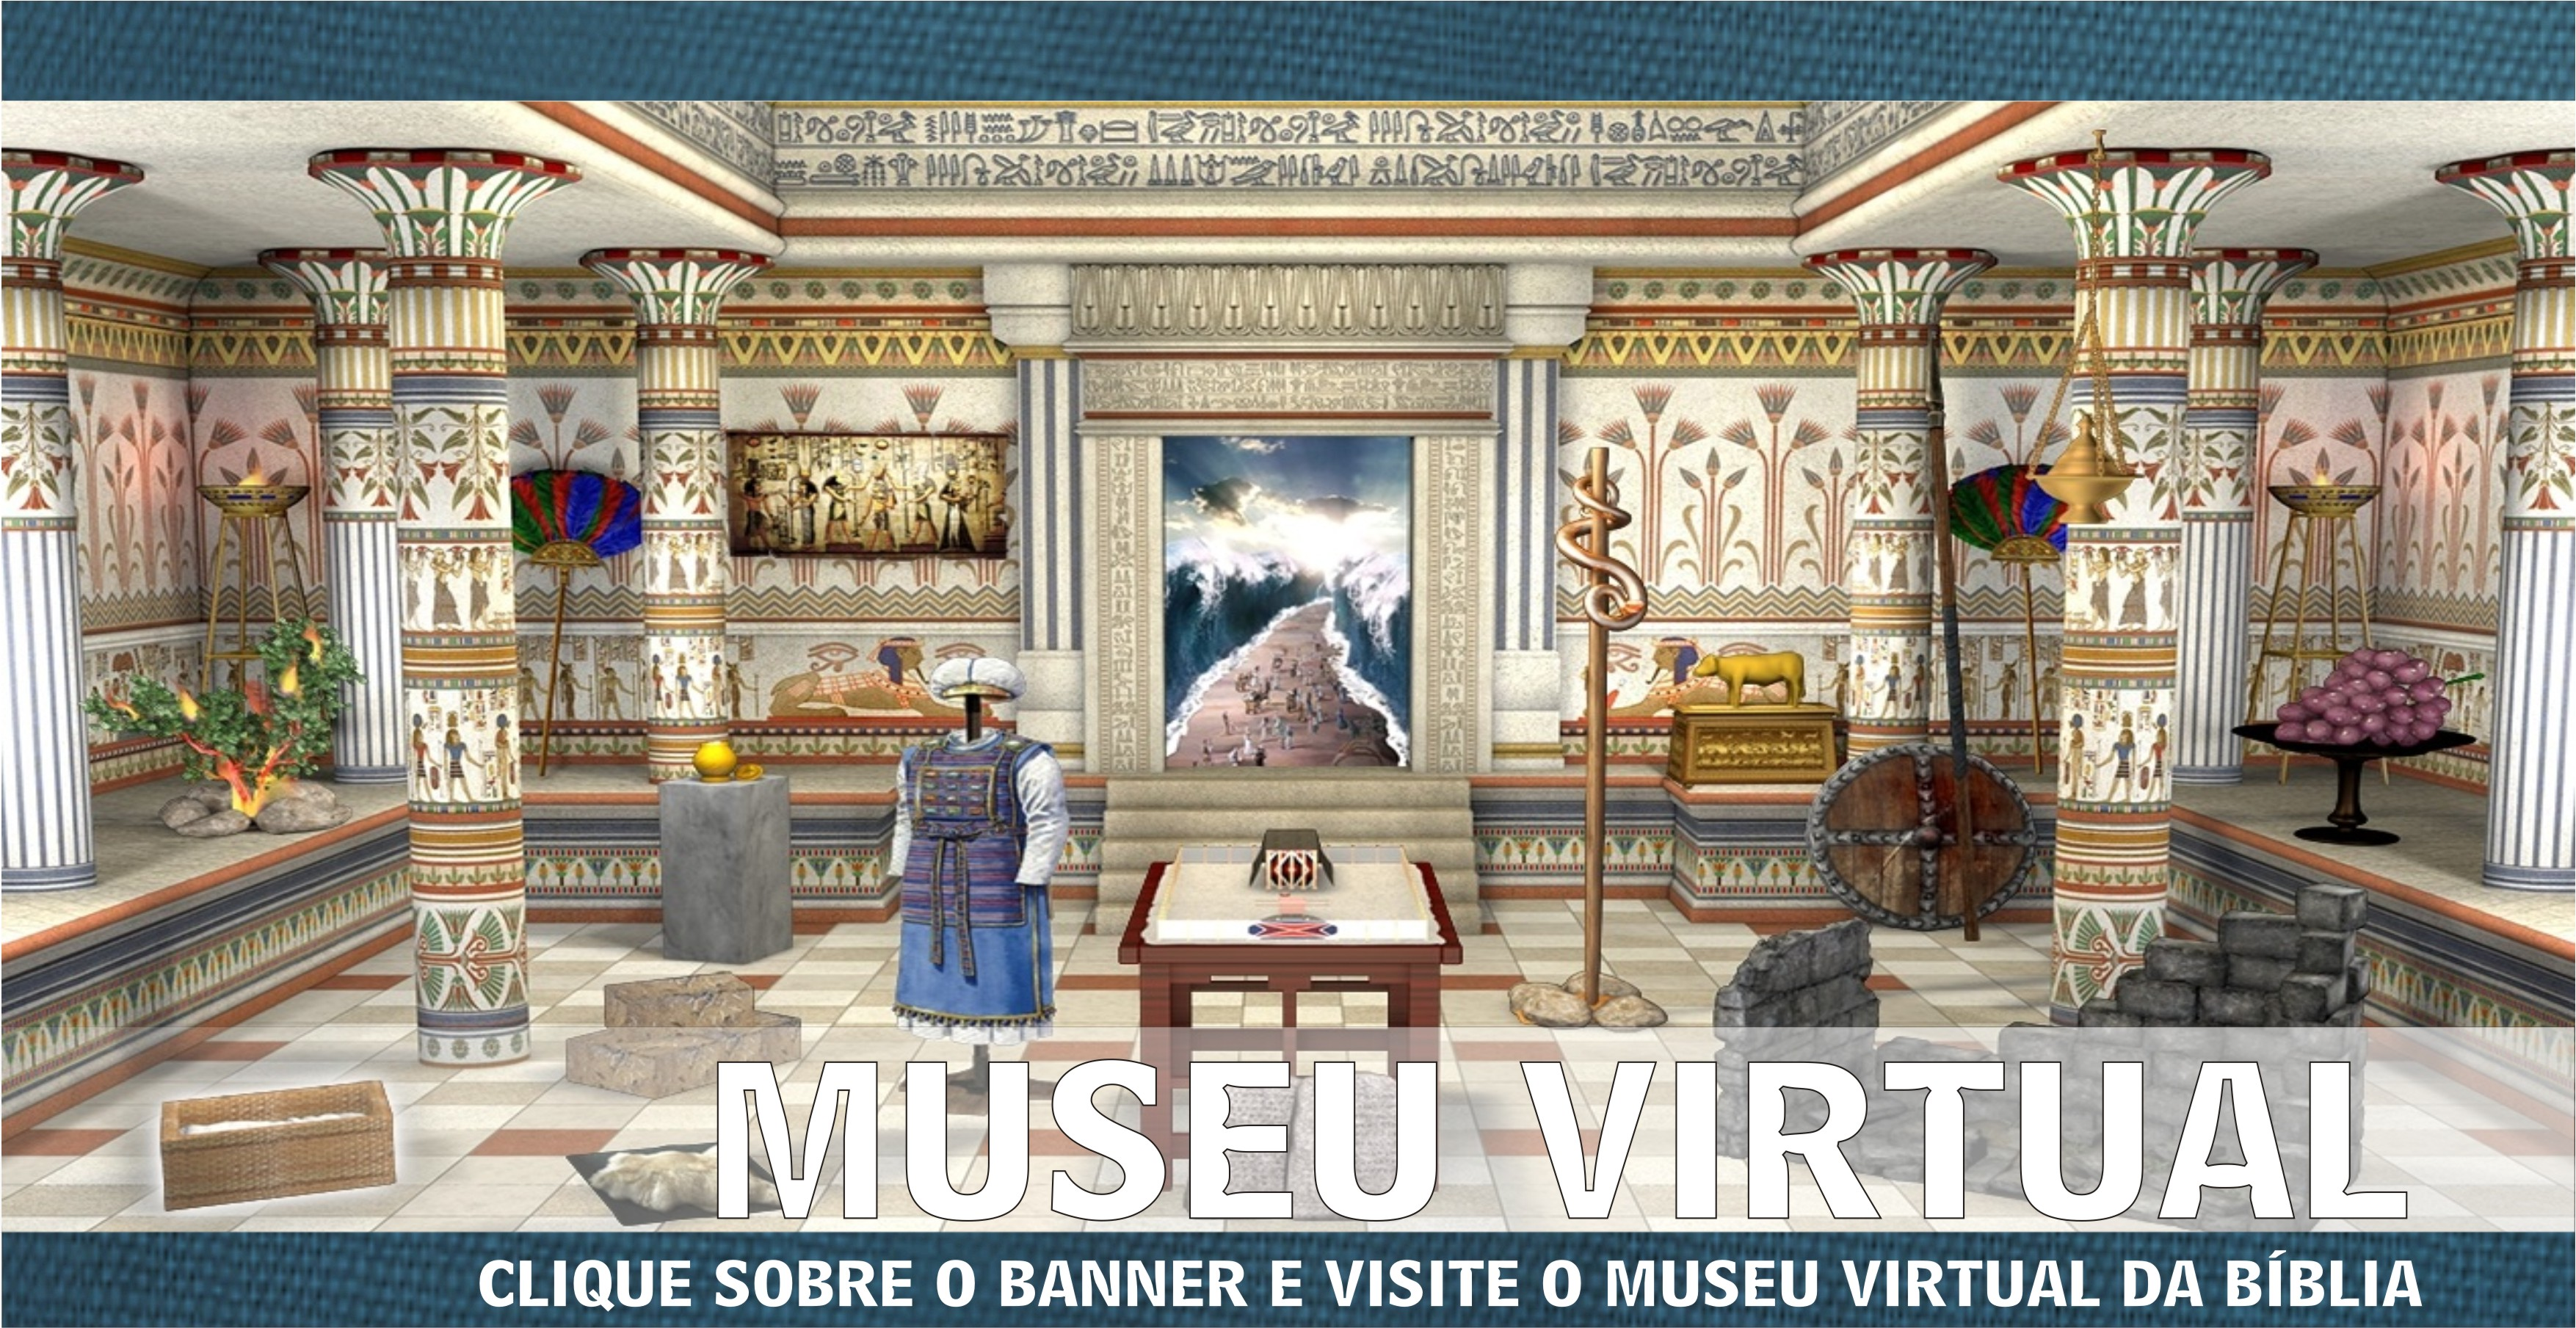 MUSEU VIRTUAL DA BIBLIA